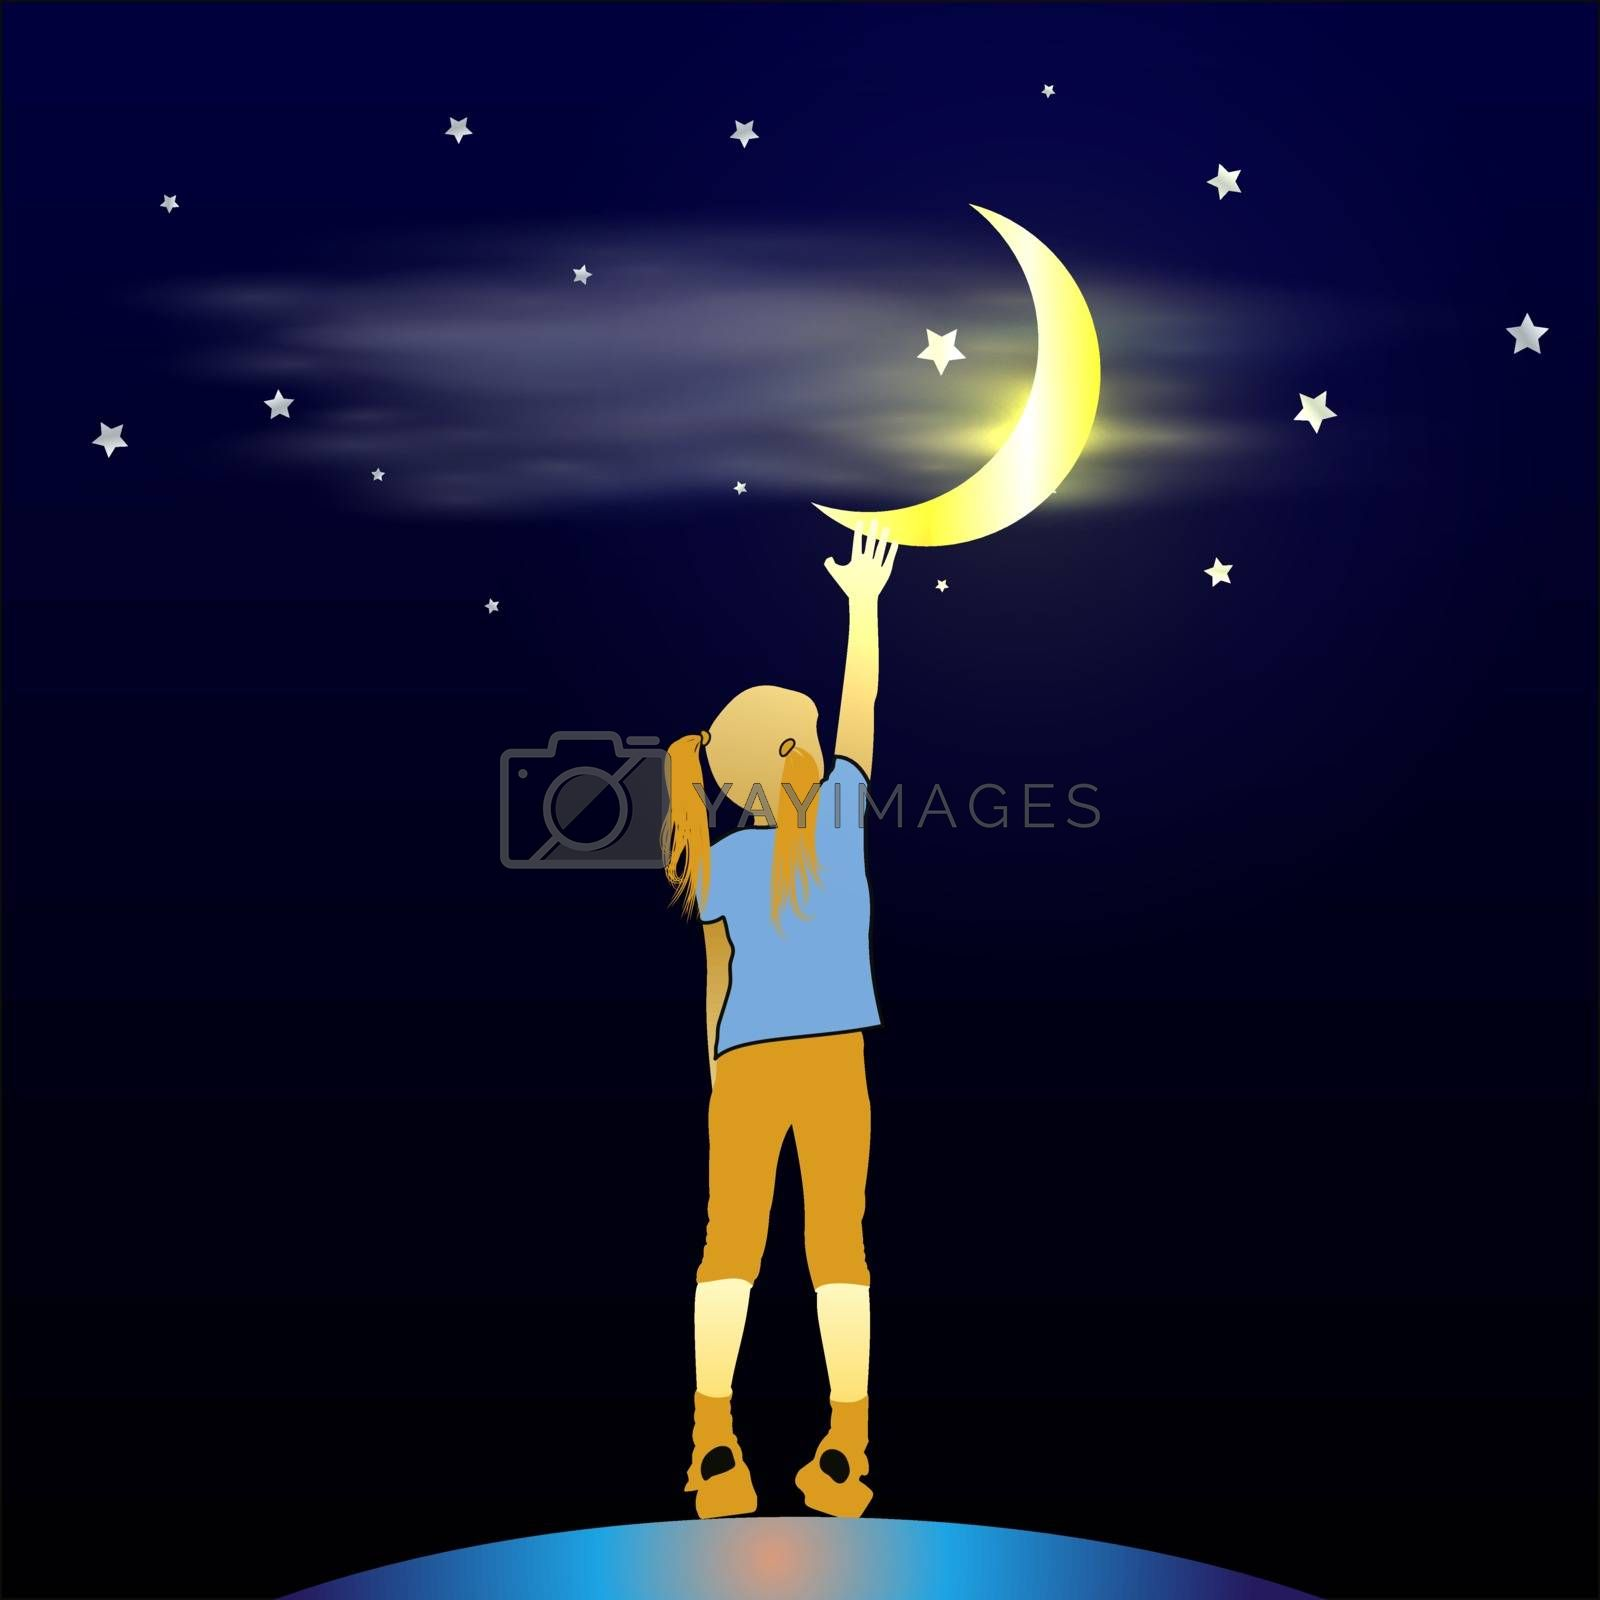 Small baby reaches with her hand for the moon and stars in the night deep blue sky. Thirst for knowledge concept. Vector silhouette illustration